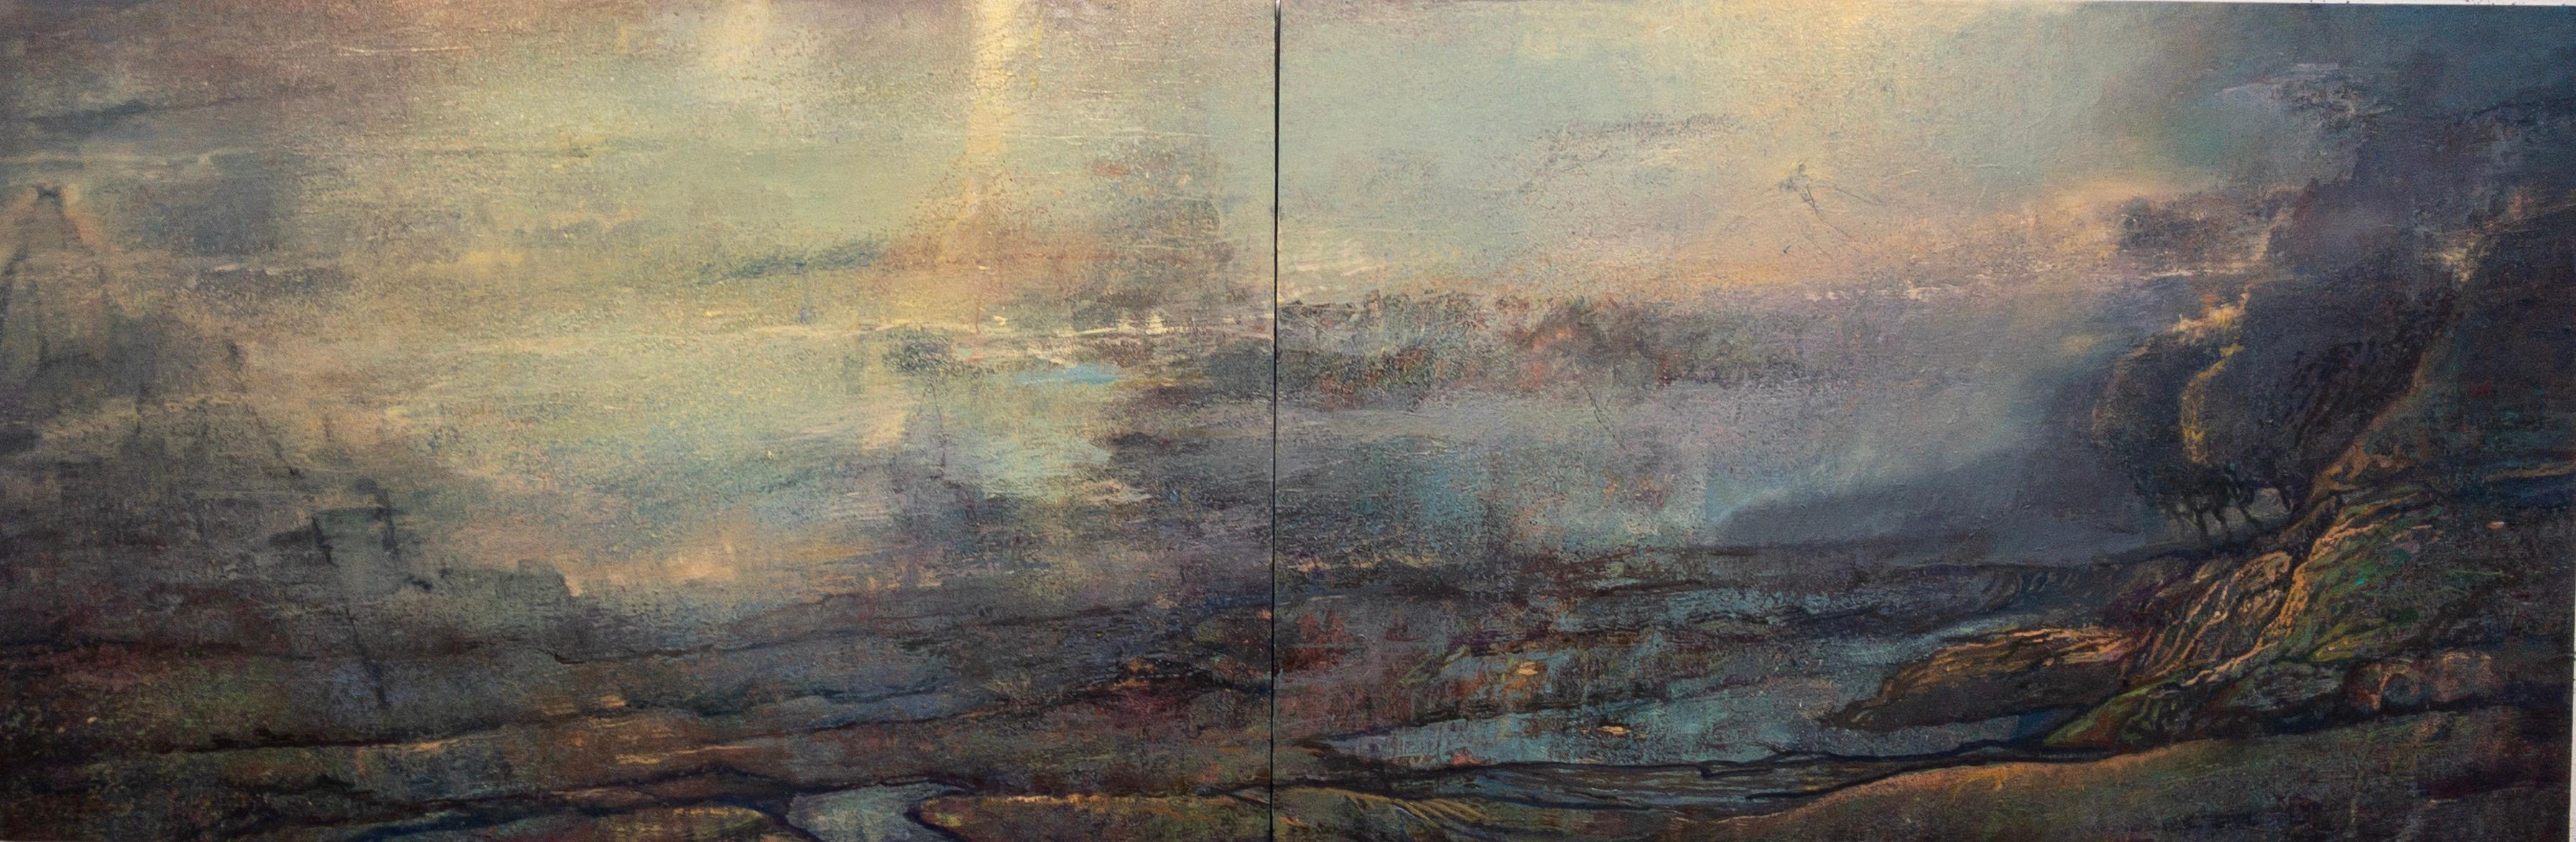 Letter to the Sixth Poet - 40x120 oil on canvas diptych - serene luxury